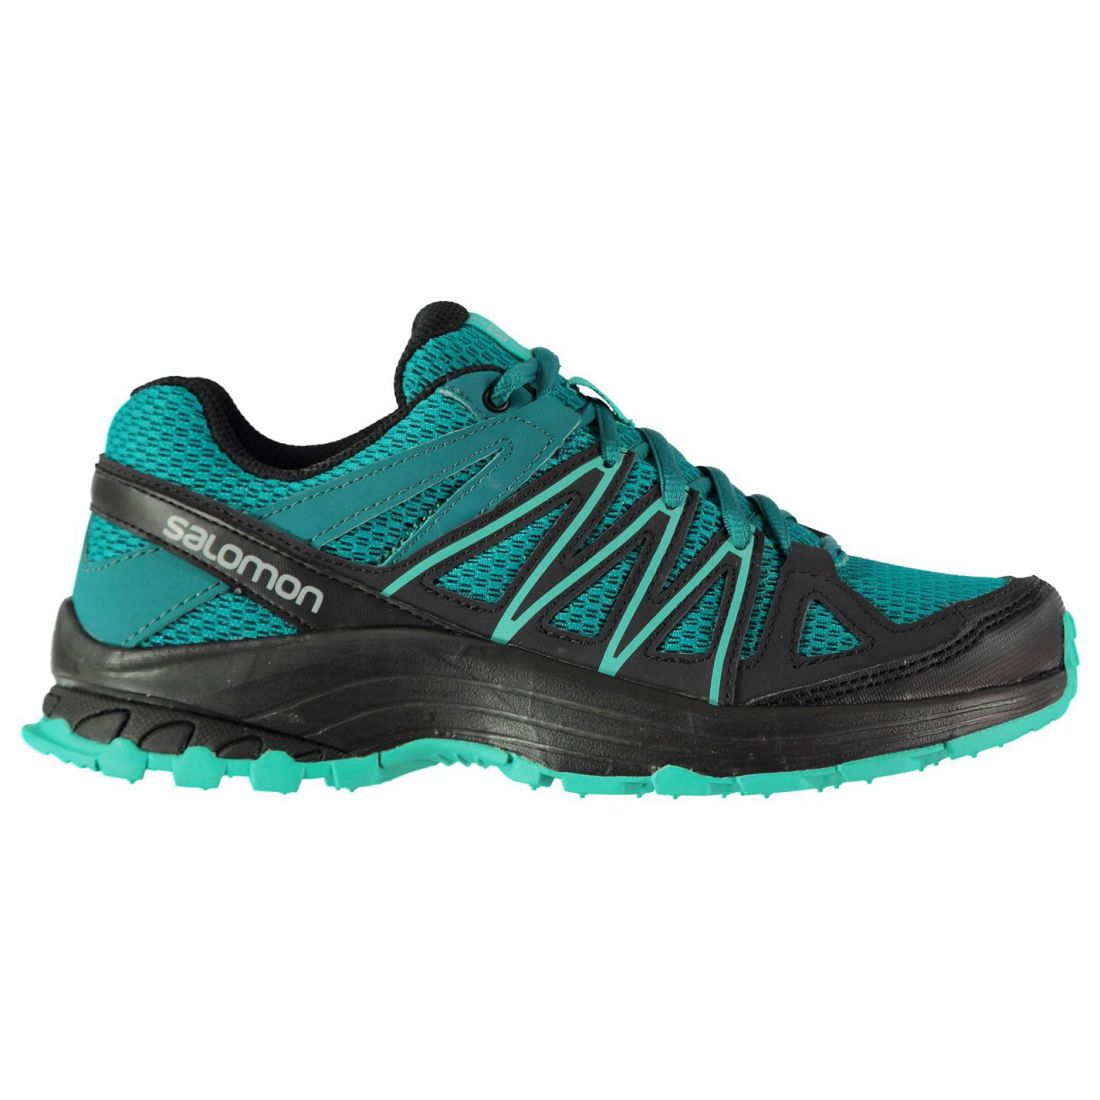 info for c9807 02167 Salomon Ladies Bondcliff Trail Running Shoes Laces Fastened Footwear